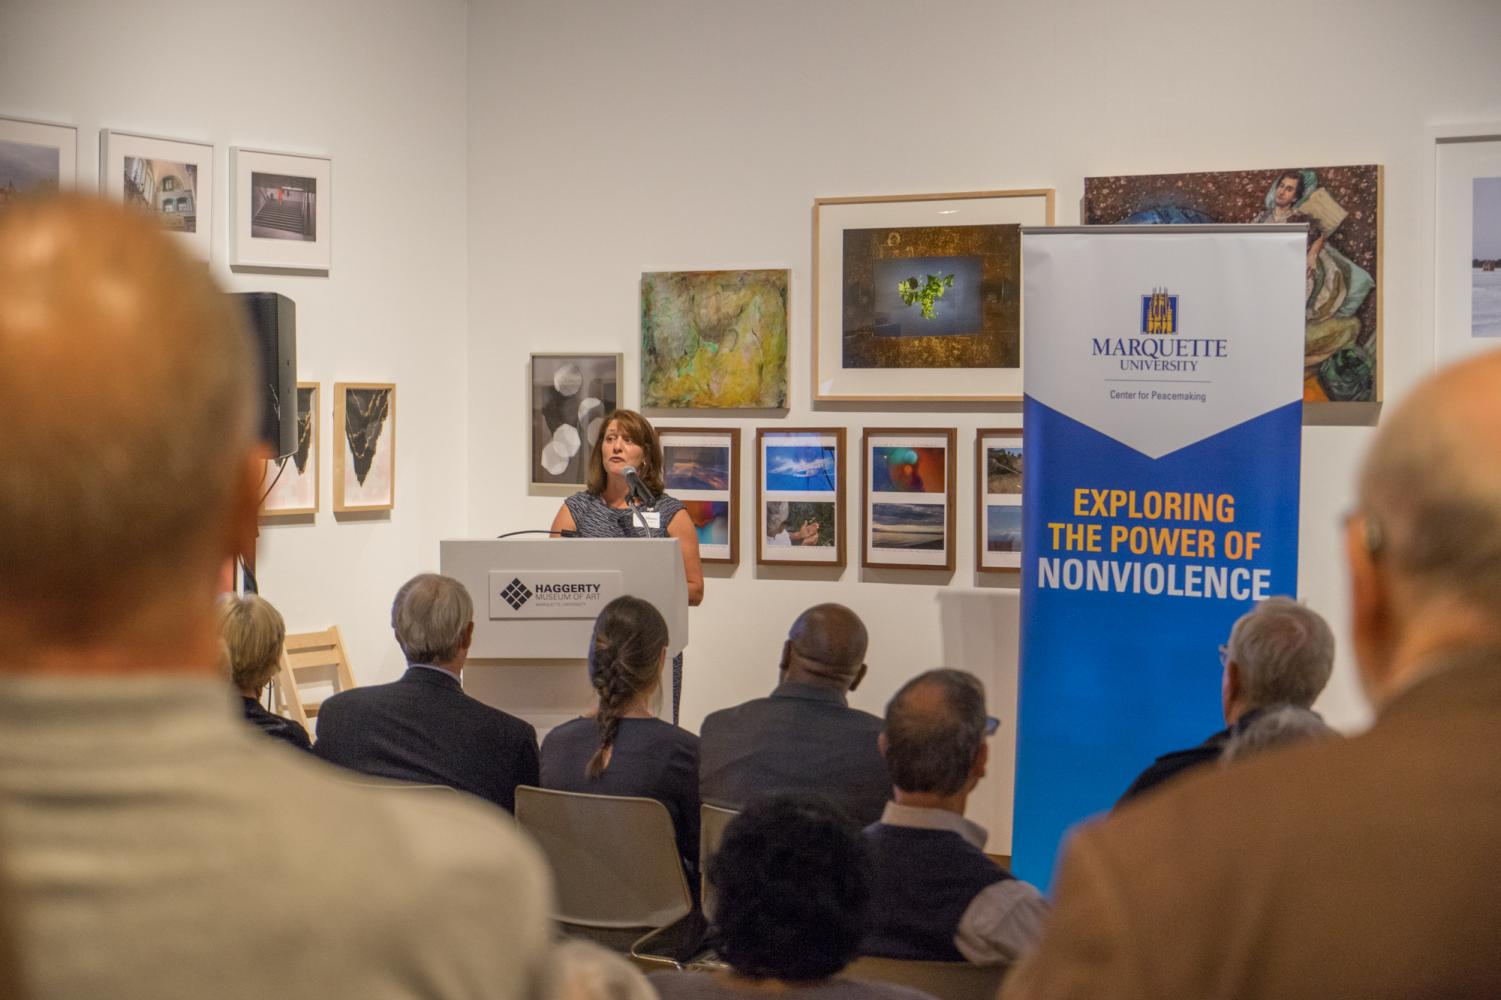 The Center for Peacemaking celebrated its 10-year anniversary  at the Haggerty Museum of Art.